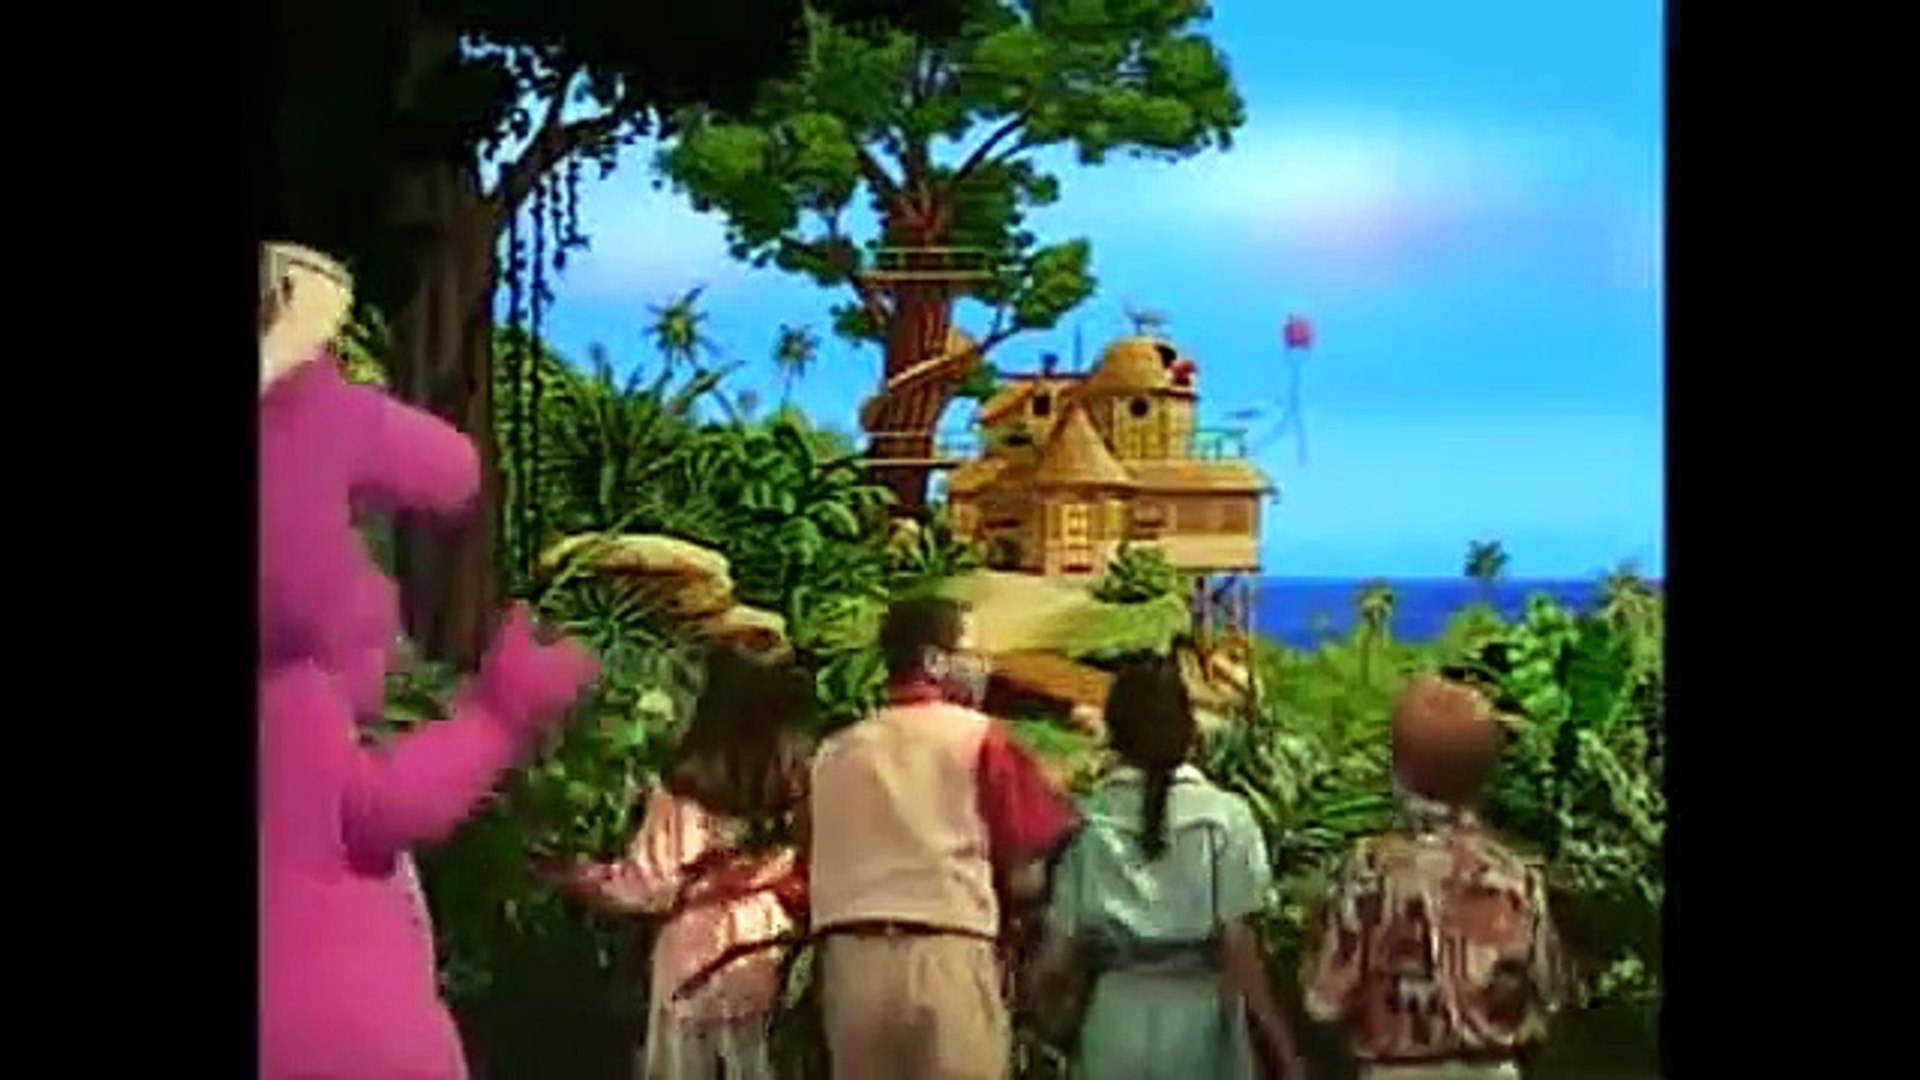 Barney and Friends - Imagination, Fun Fun Forest